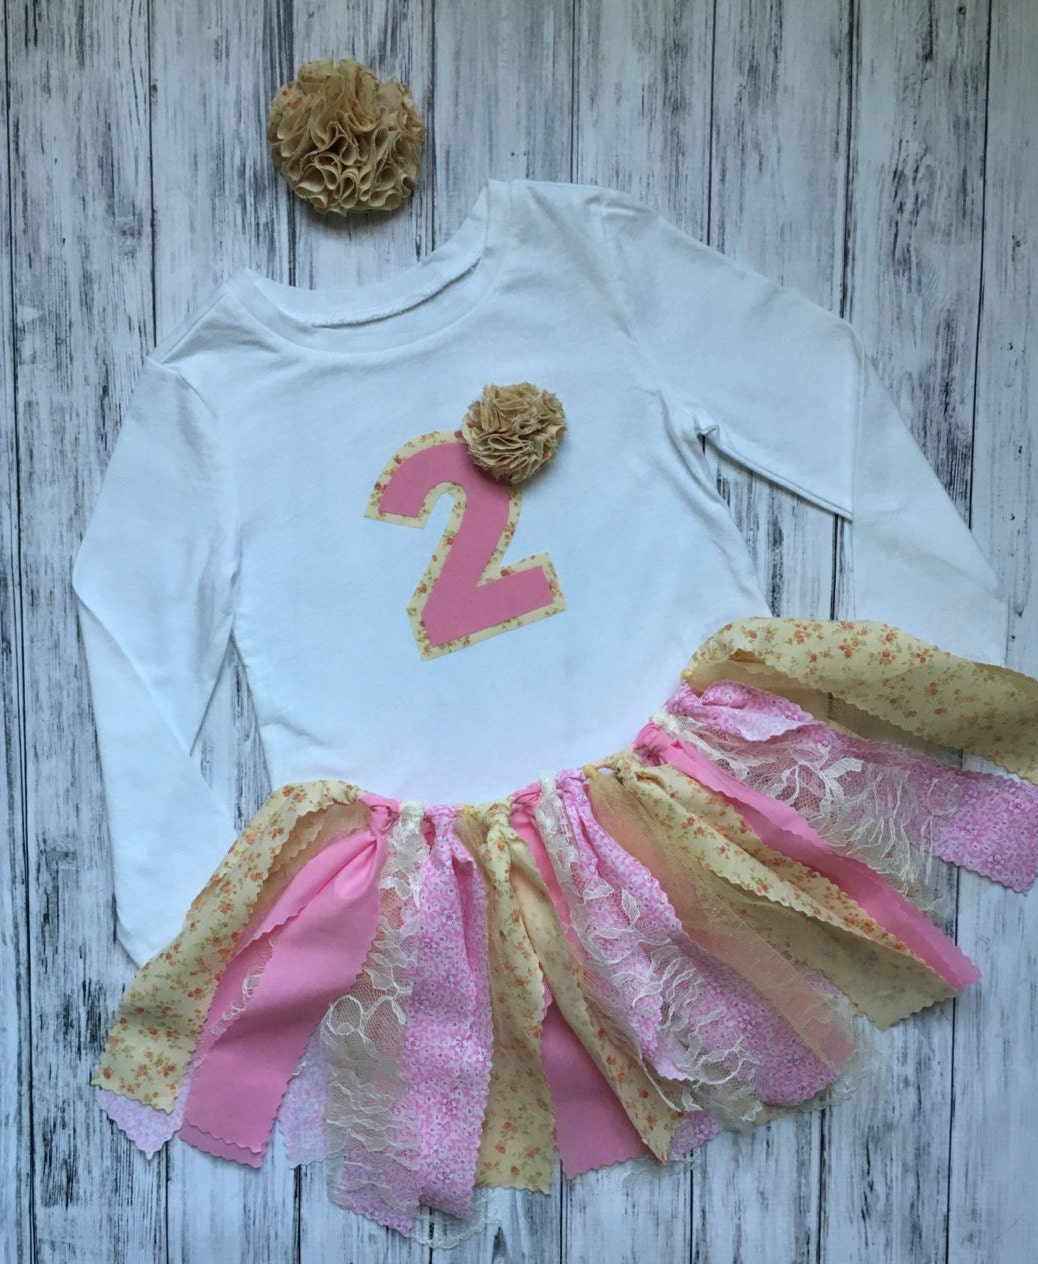 Shabby chic birthday outfit number birthday outfit - Shabby chic outfit ideas ...